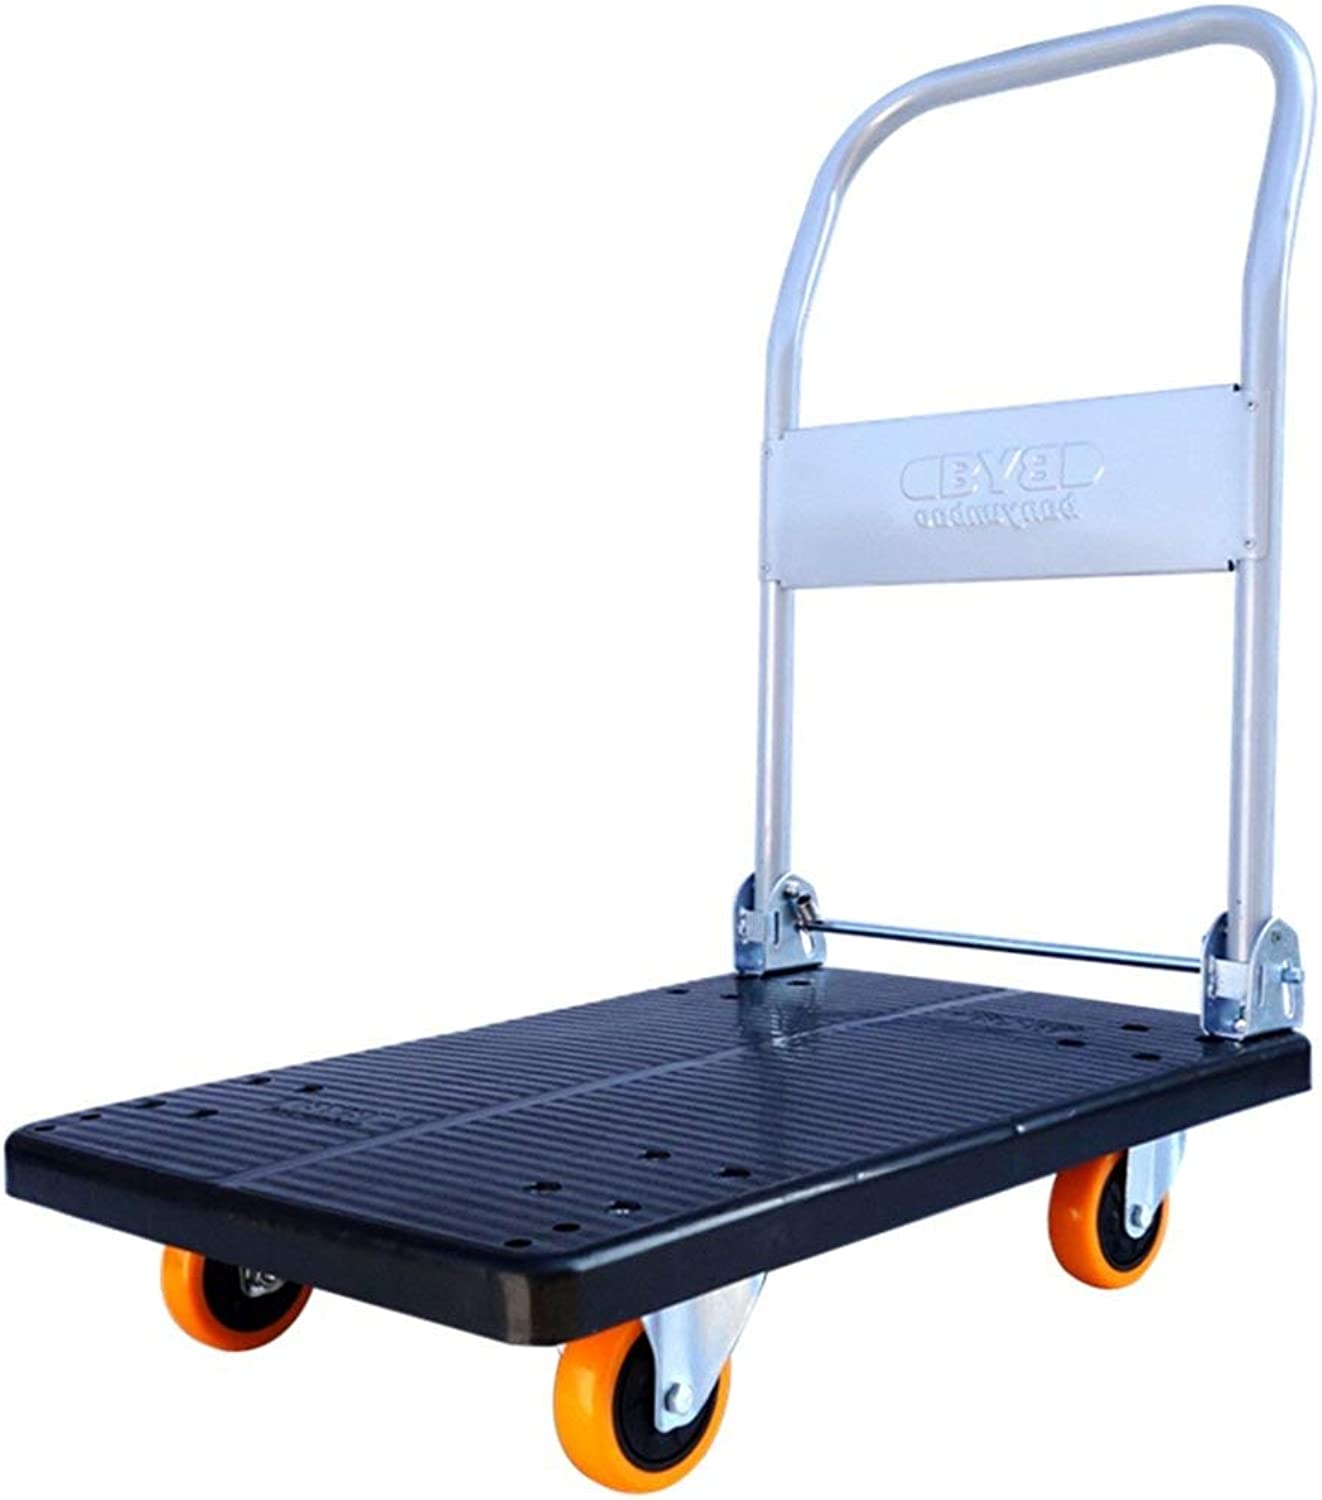 Trolley, Home Discount Platform Hand Trolley Folding Truck Cart Heavy Duty Flat Bed Transport for Easy Transportation Heavy Lifting